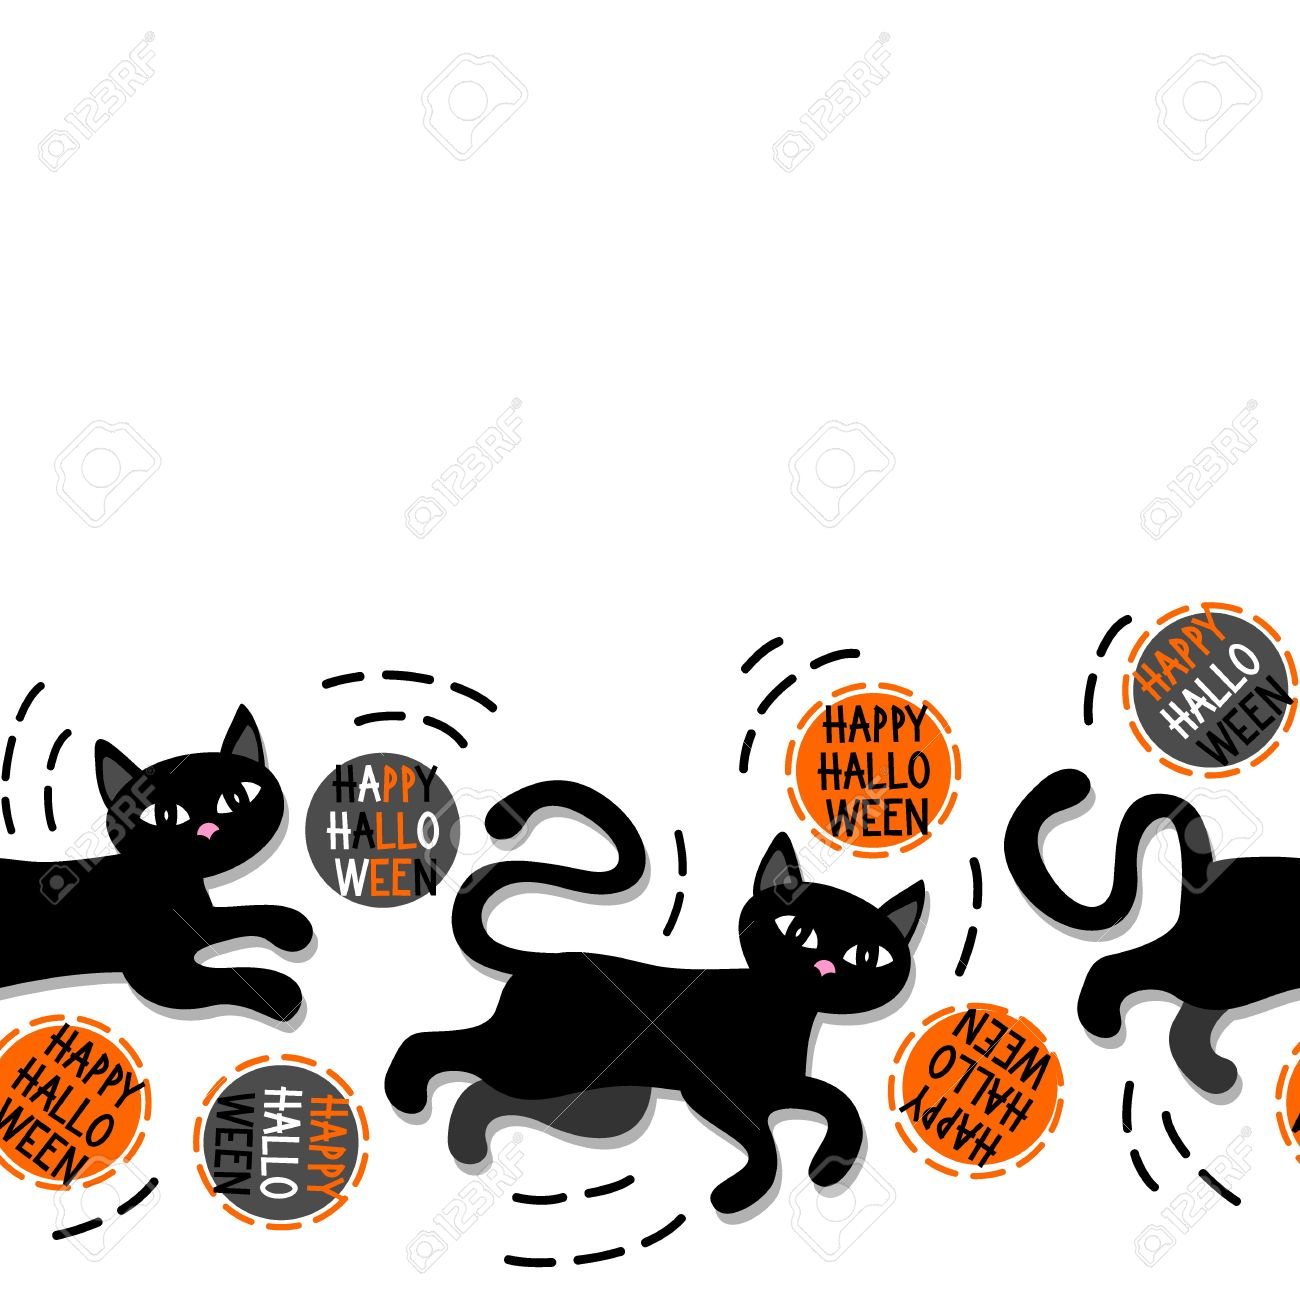 Black Cats With Halloween Wishes Holiday Seamless Horizontal Border On  White Background Stock Vector   31053353